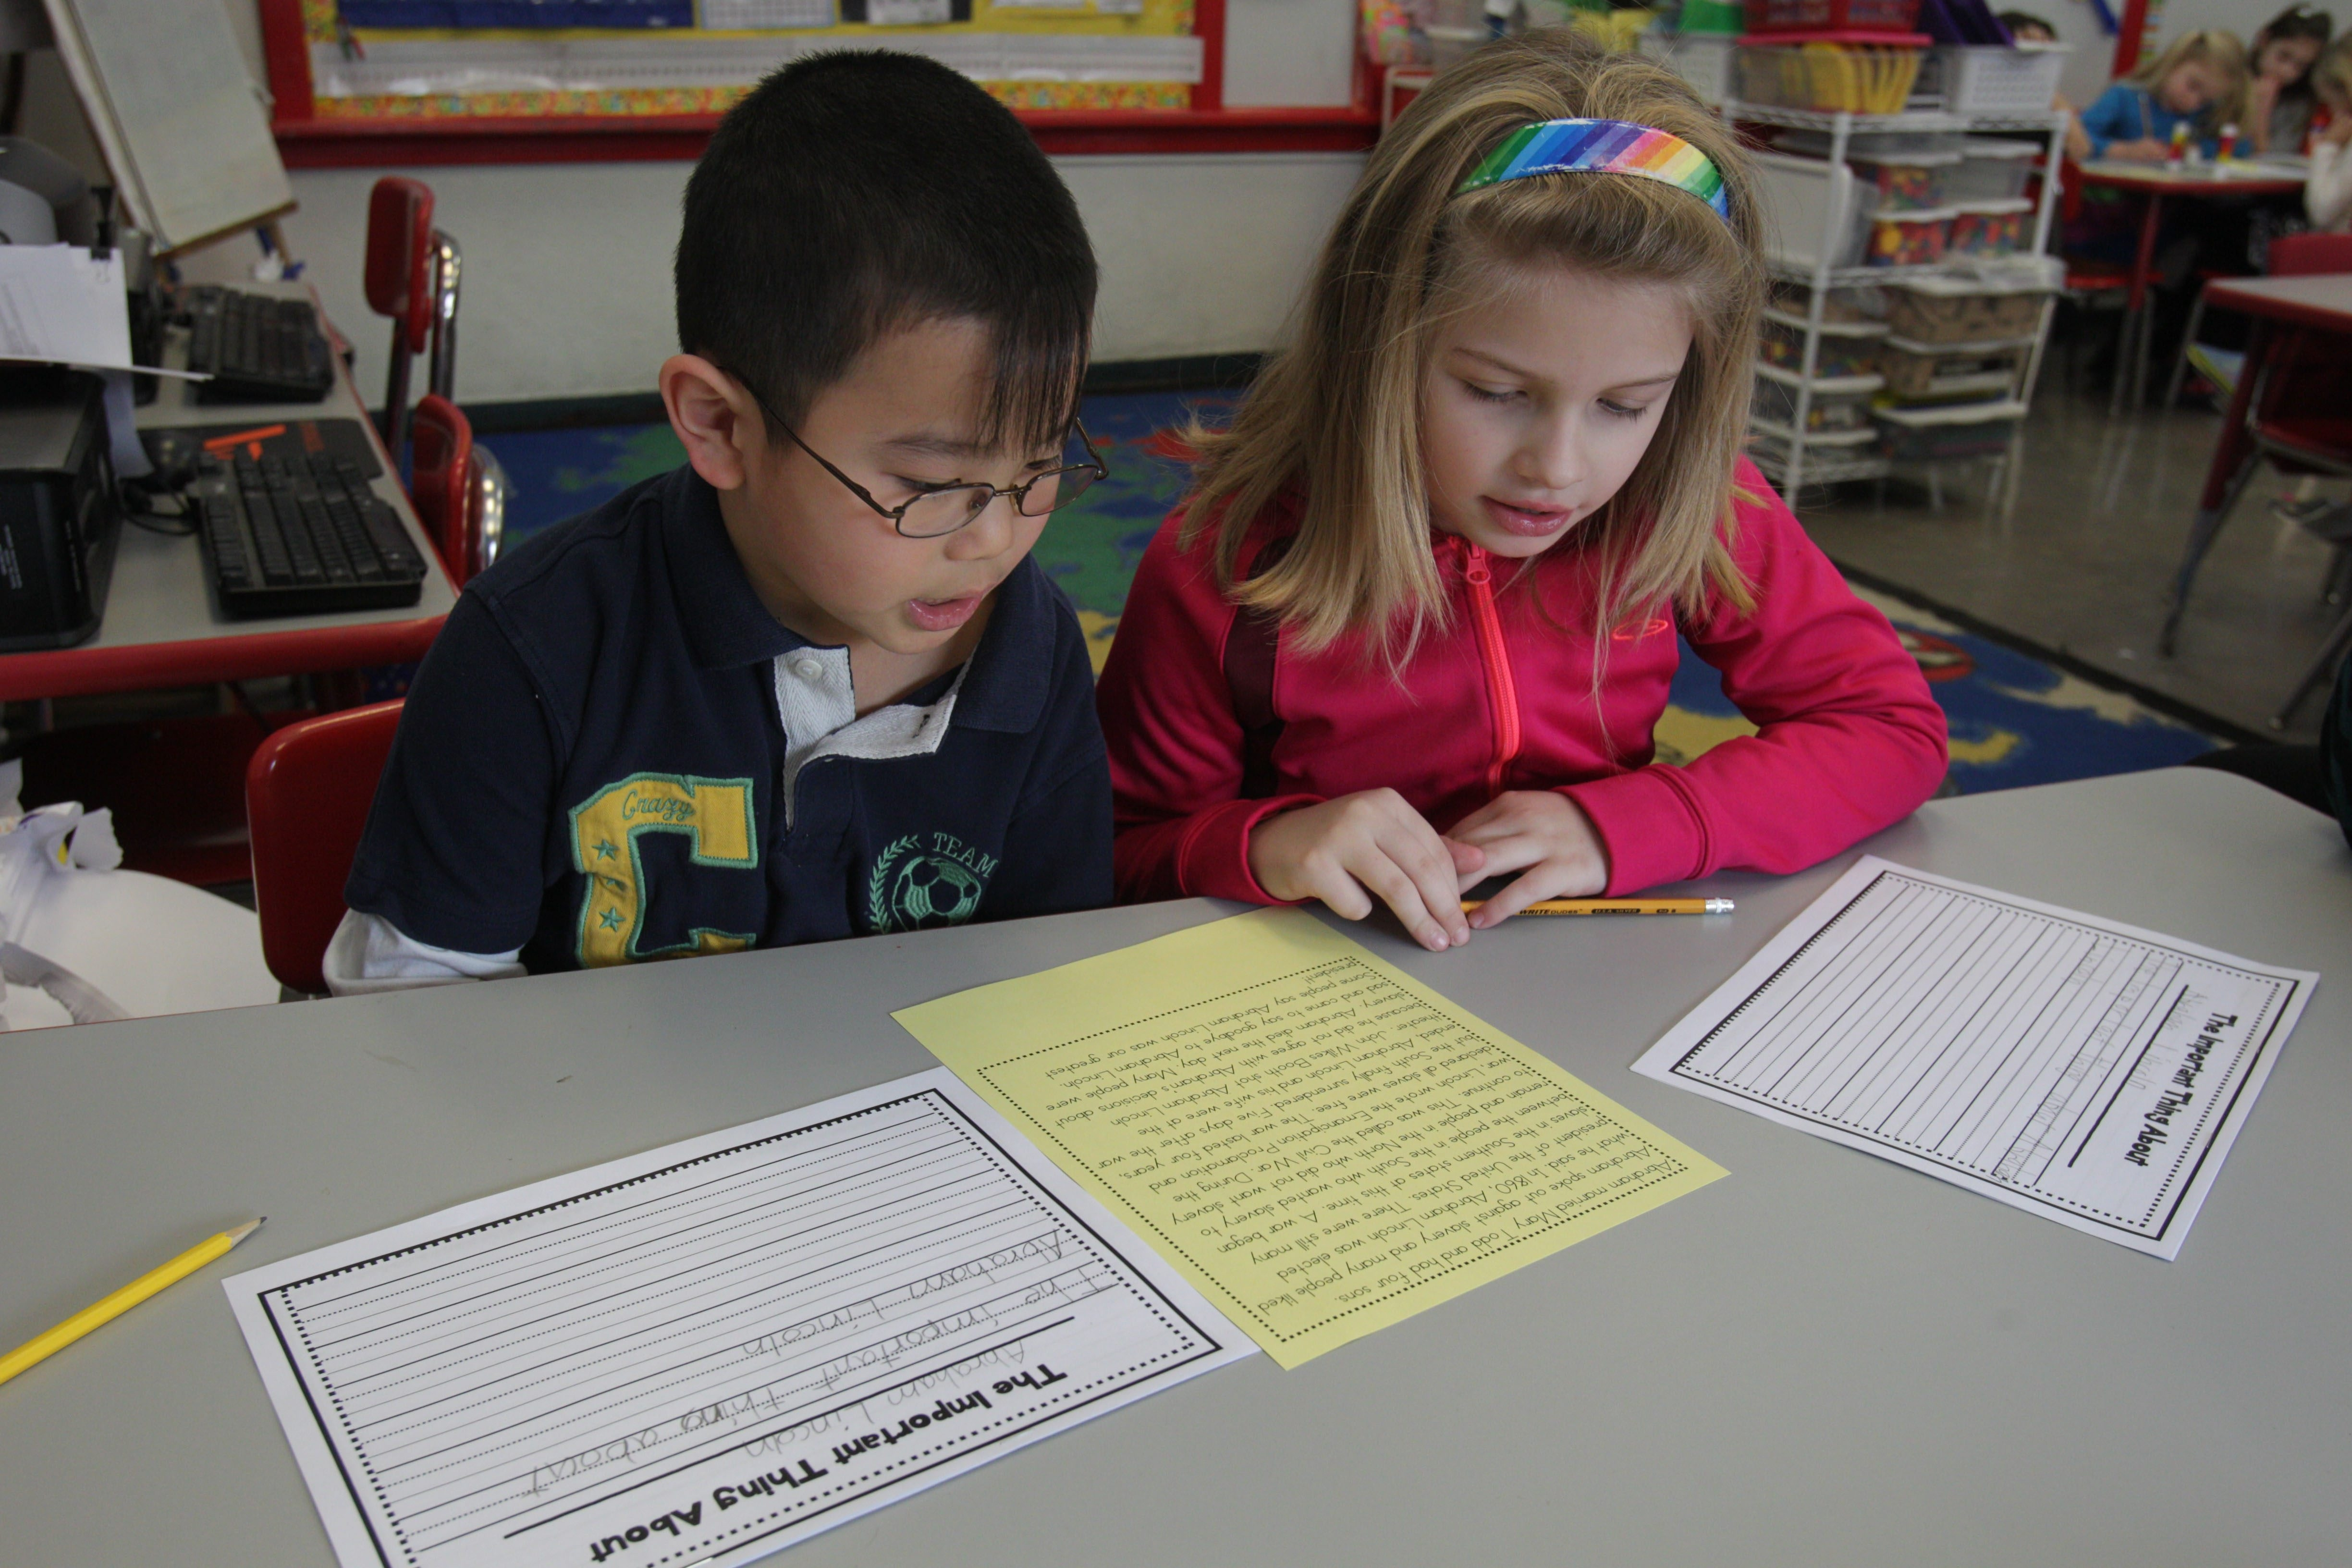 Rather than fight Common Core, teachers at Smallwood Elementary School have spent years developing new teaching strategies. Here, second-graders Caleb Chen and Meghan Roberts work on a writing project.